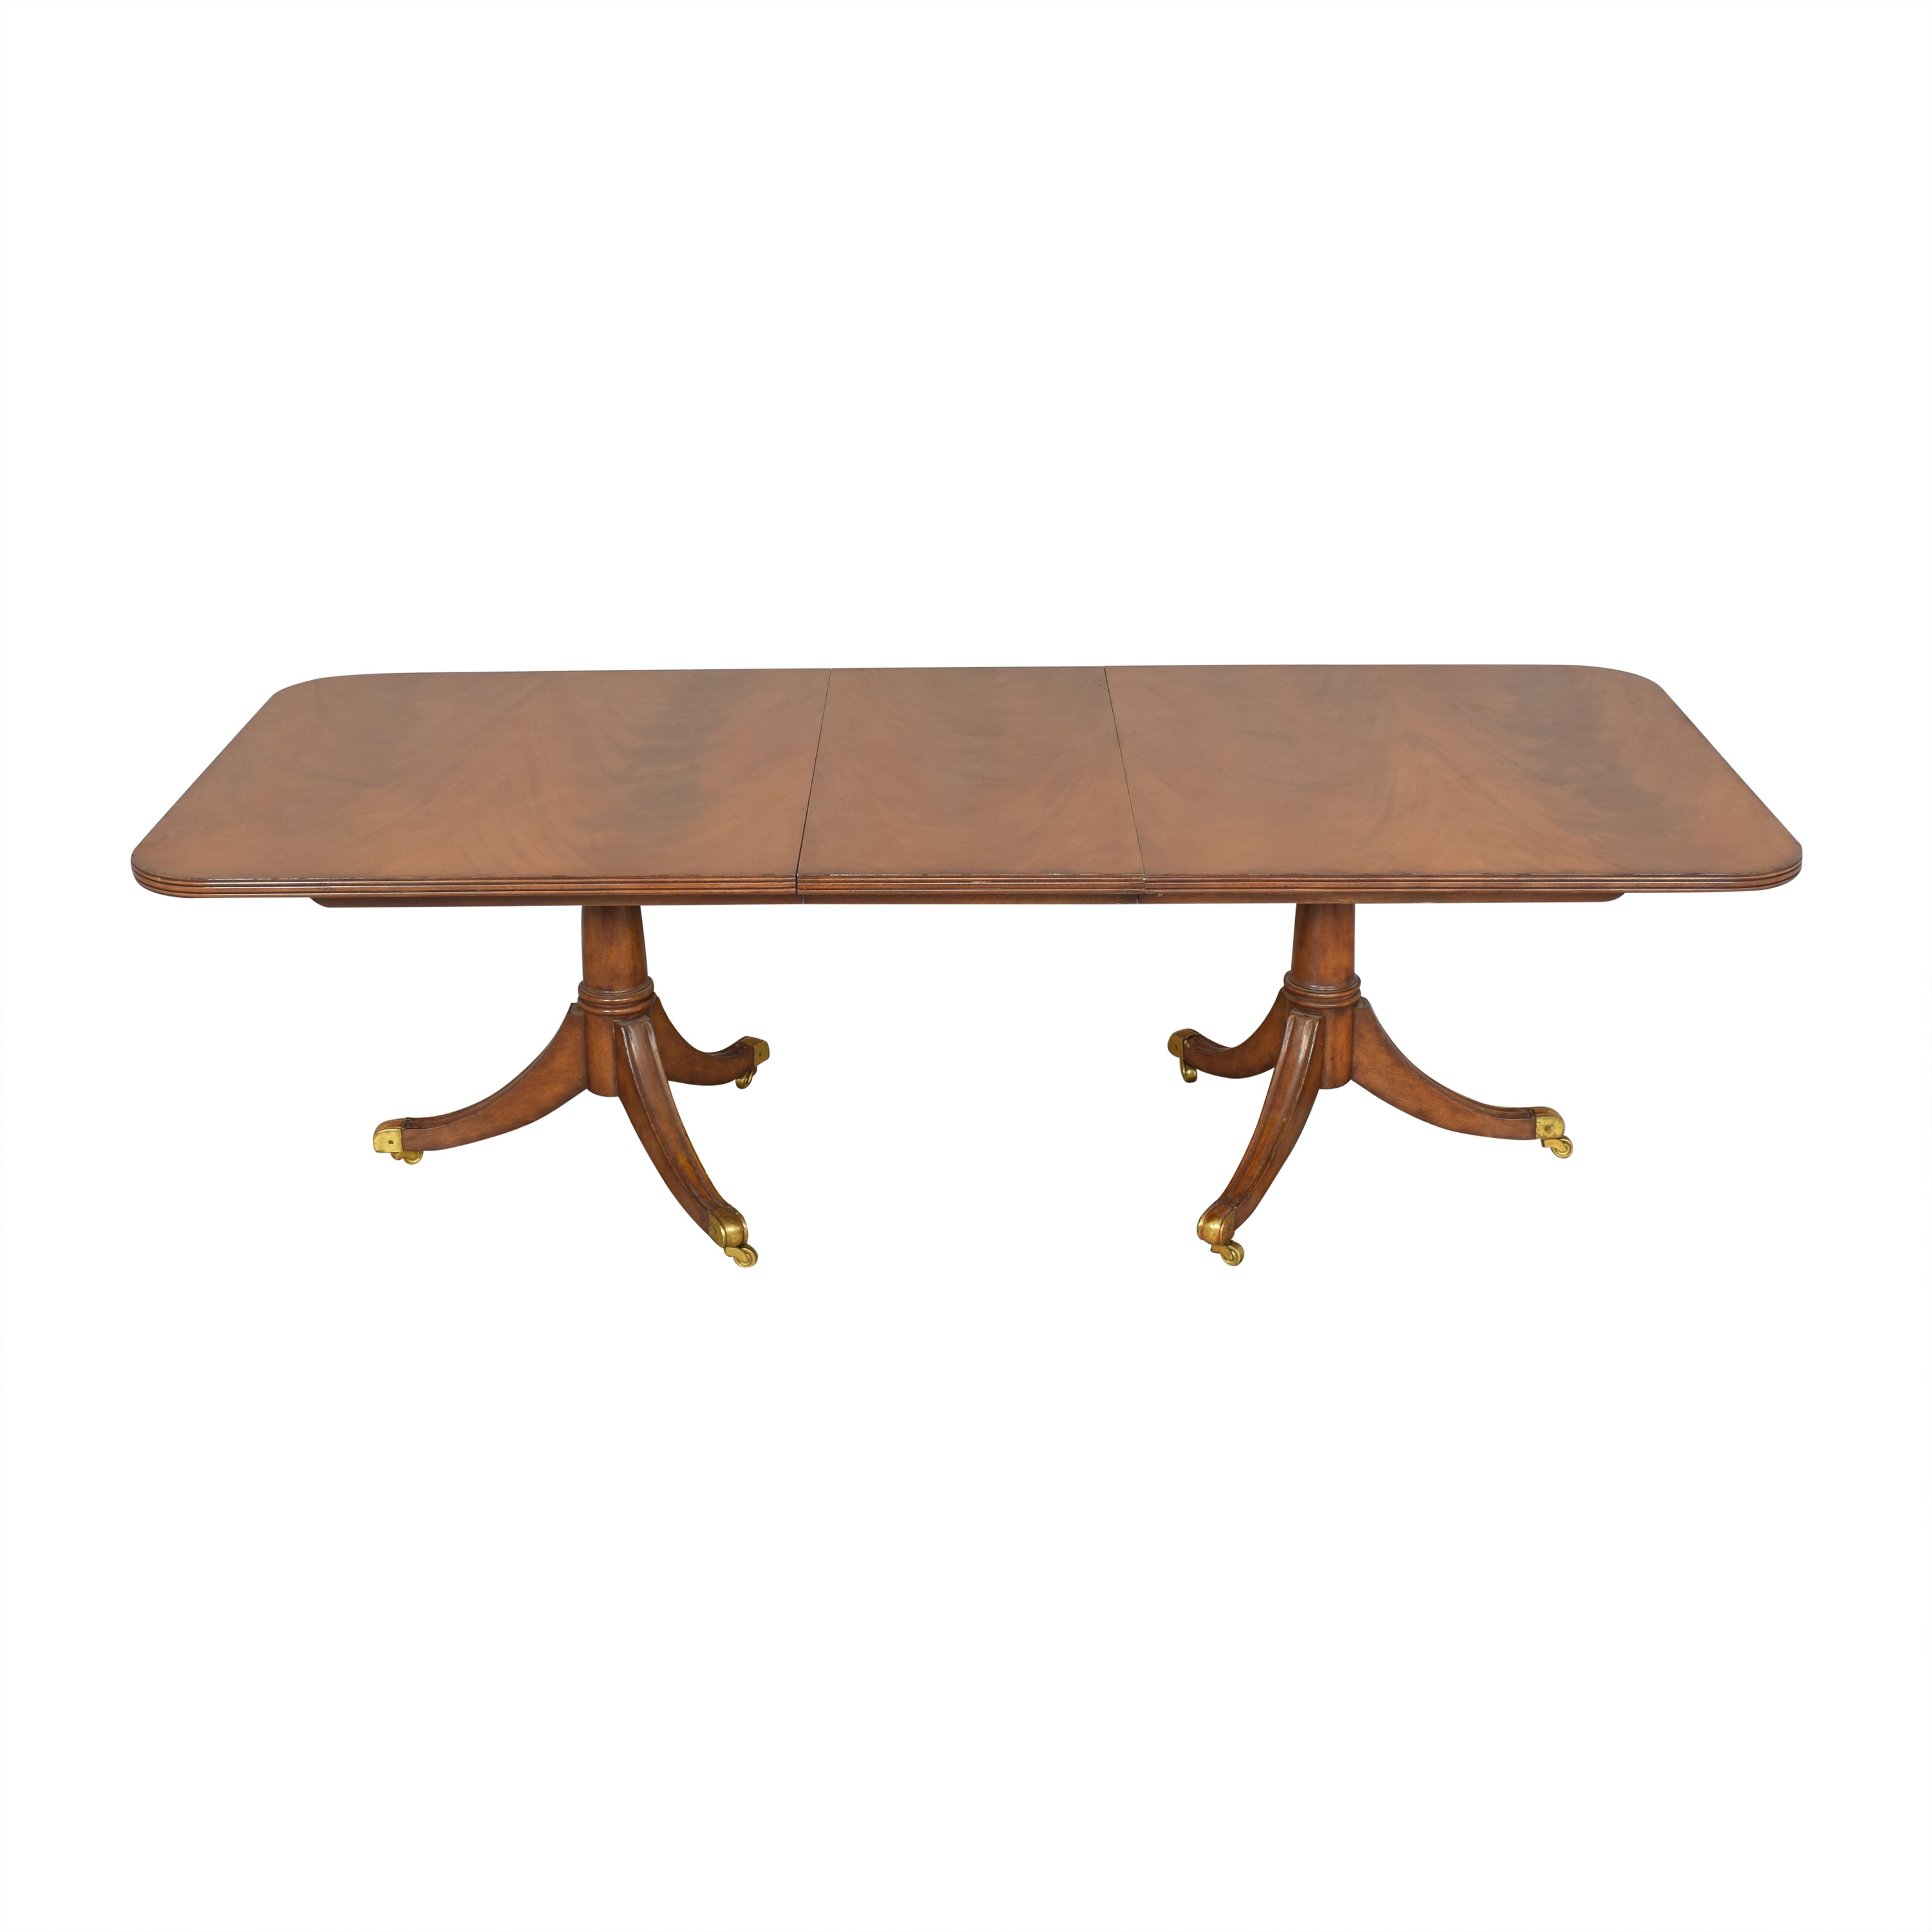 Maitland-Smith Double Pedestal Extendable Dining Table / Dinner Tables